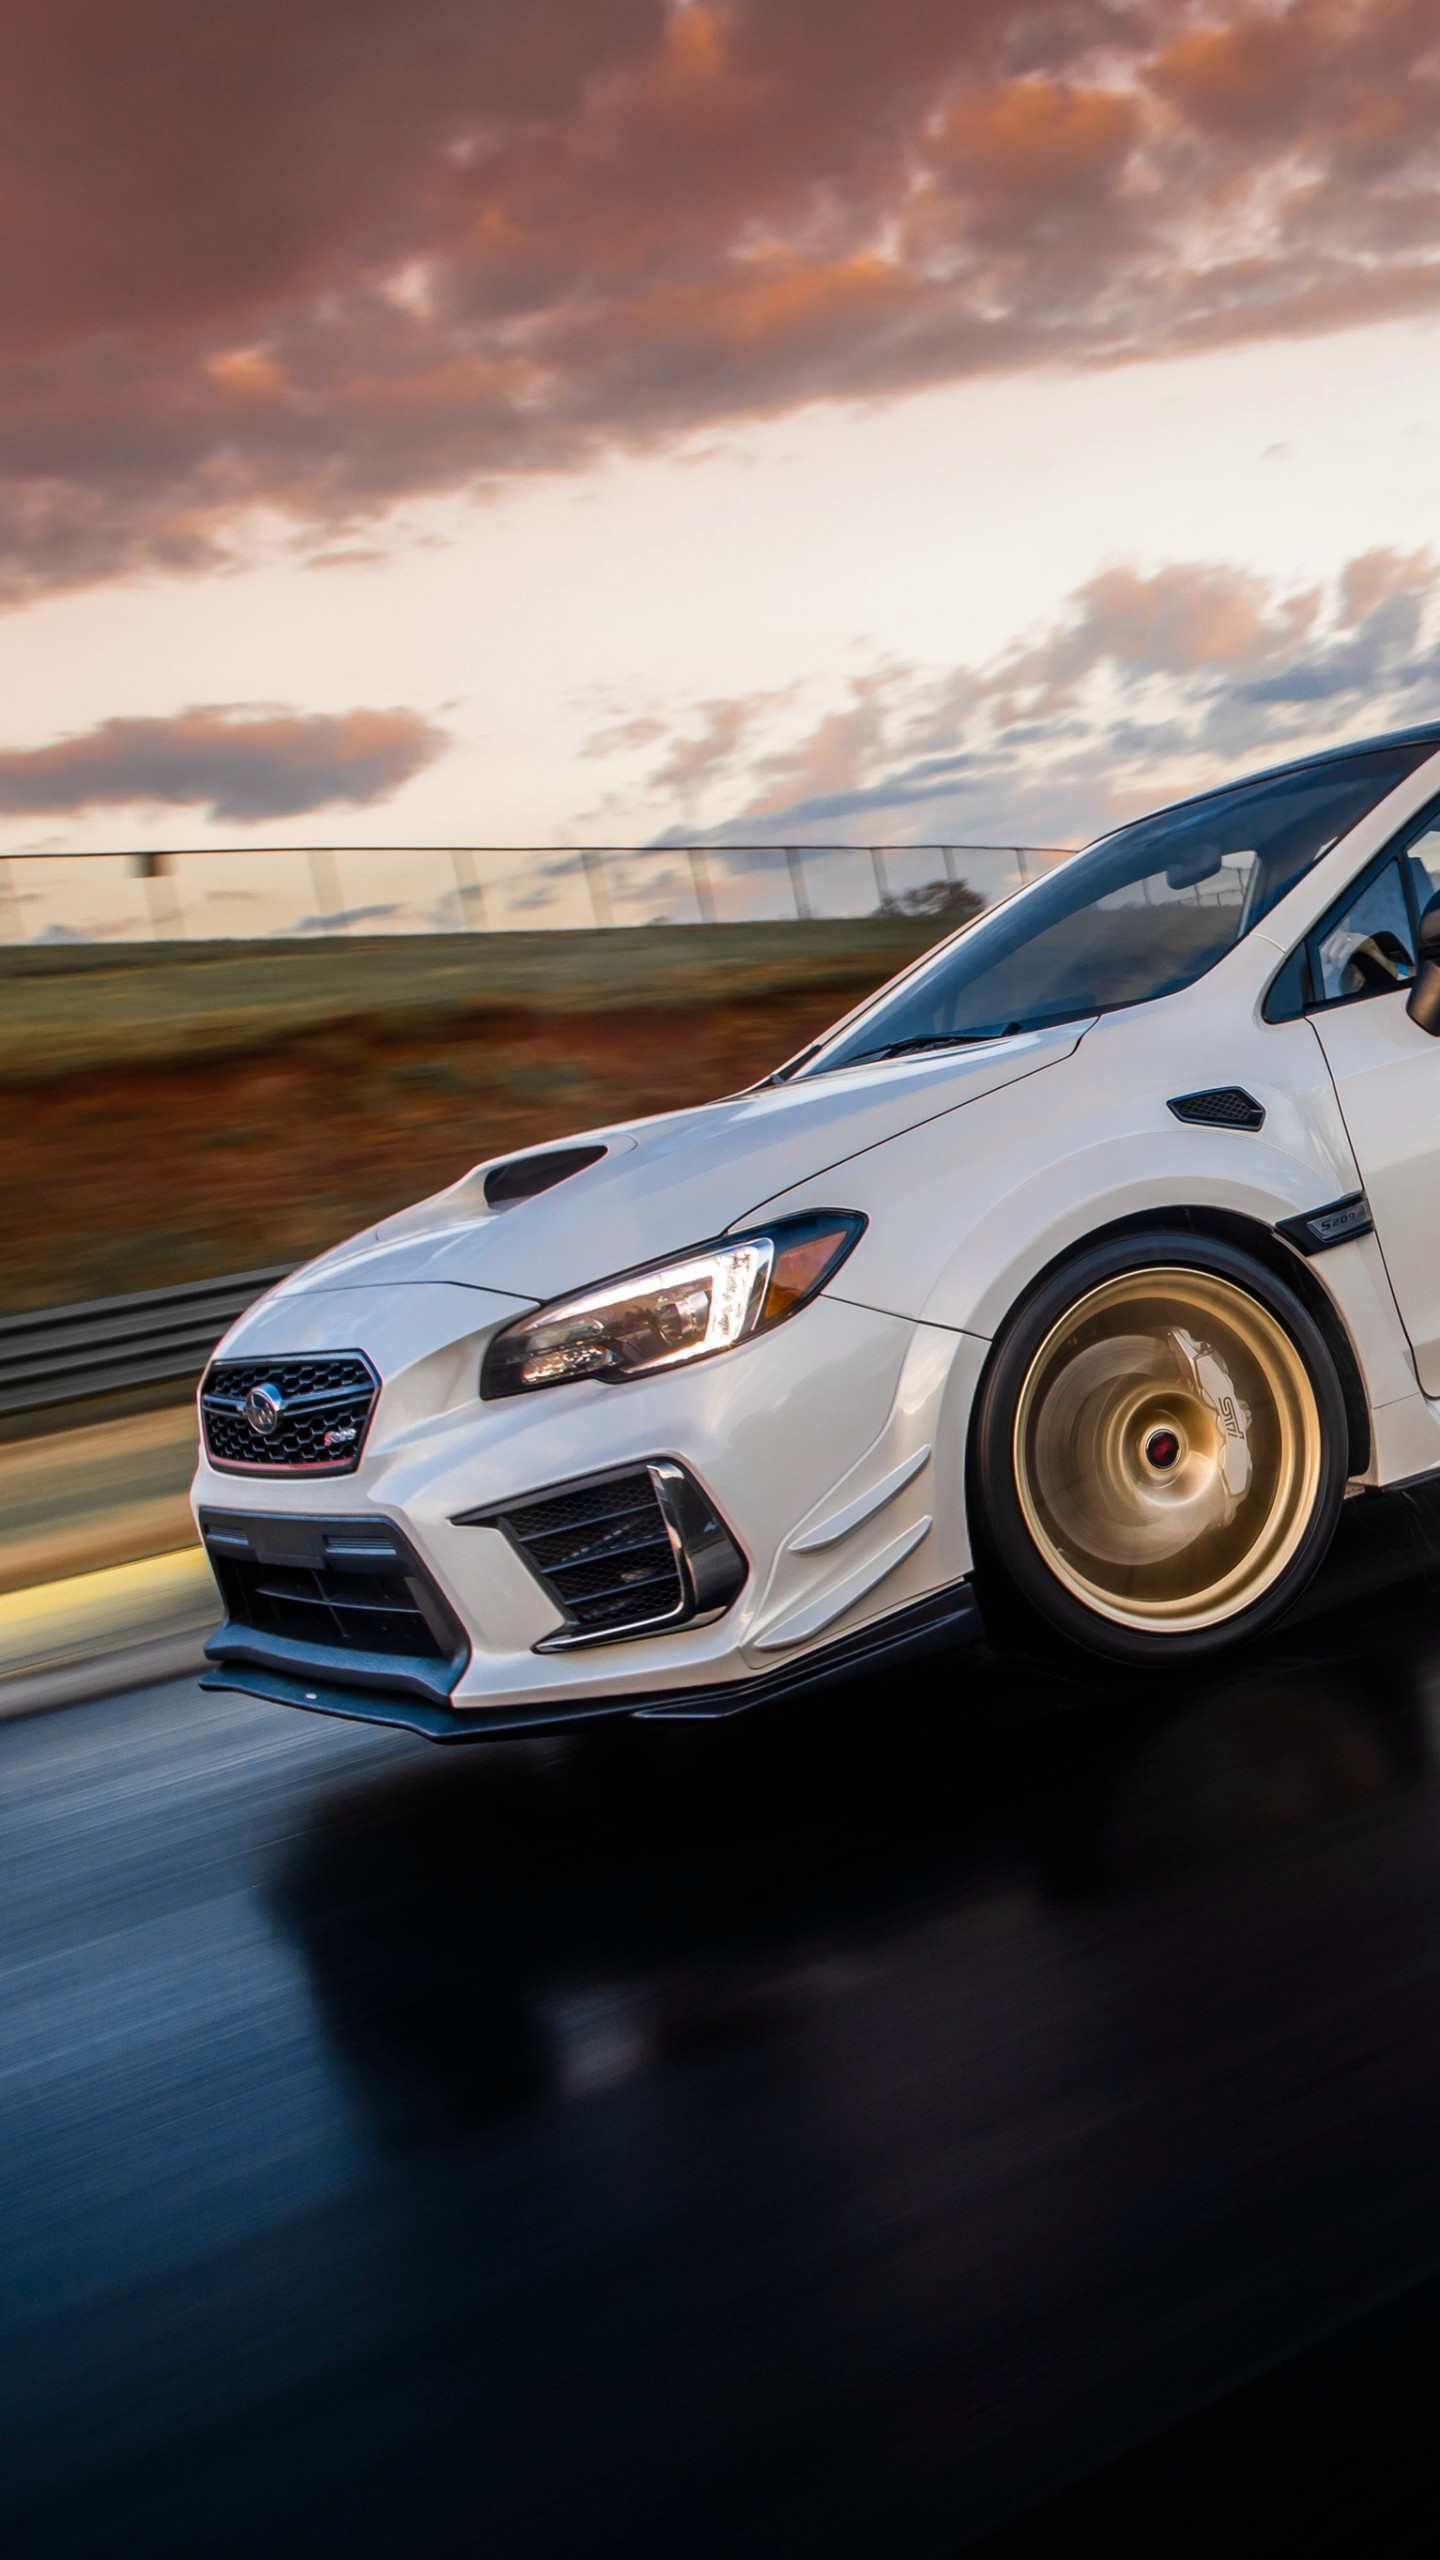 Wallpaper Subaru Sti S209 2019 Cars 2019 Detroit Auto